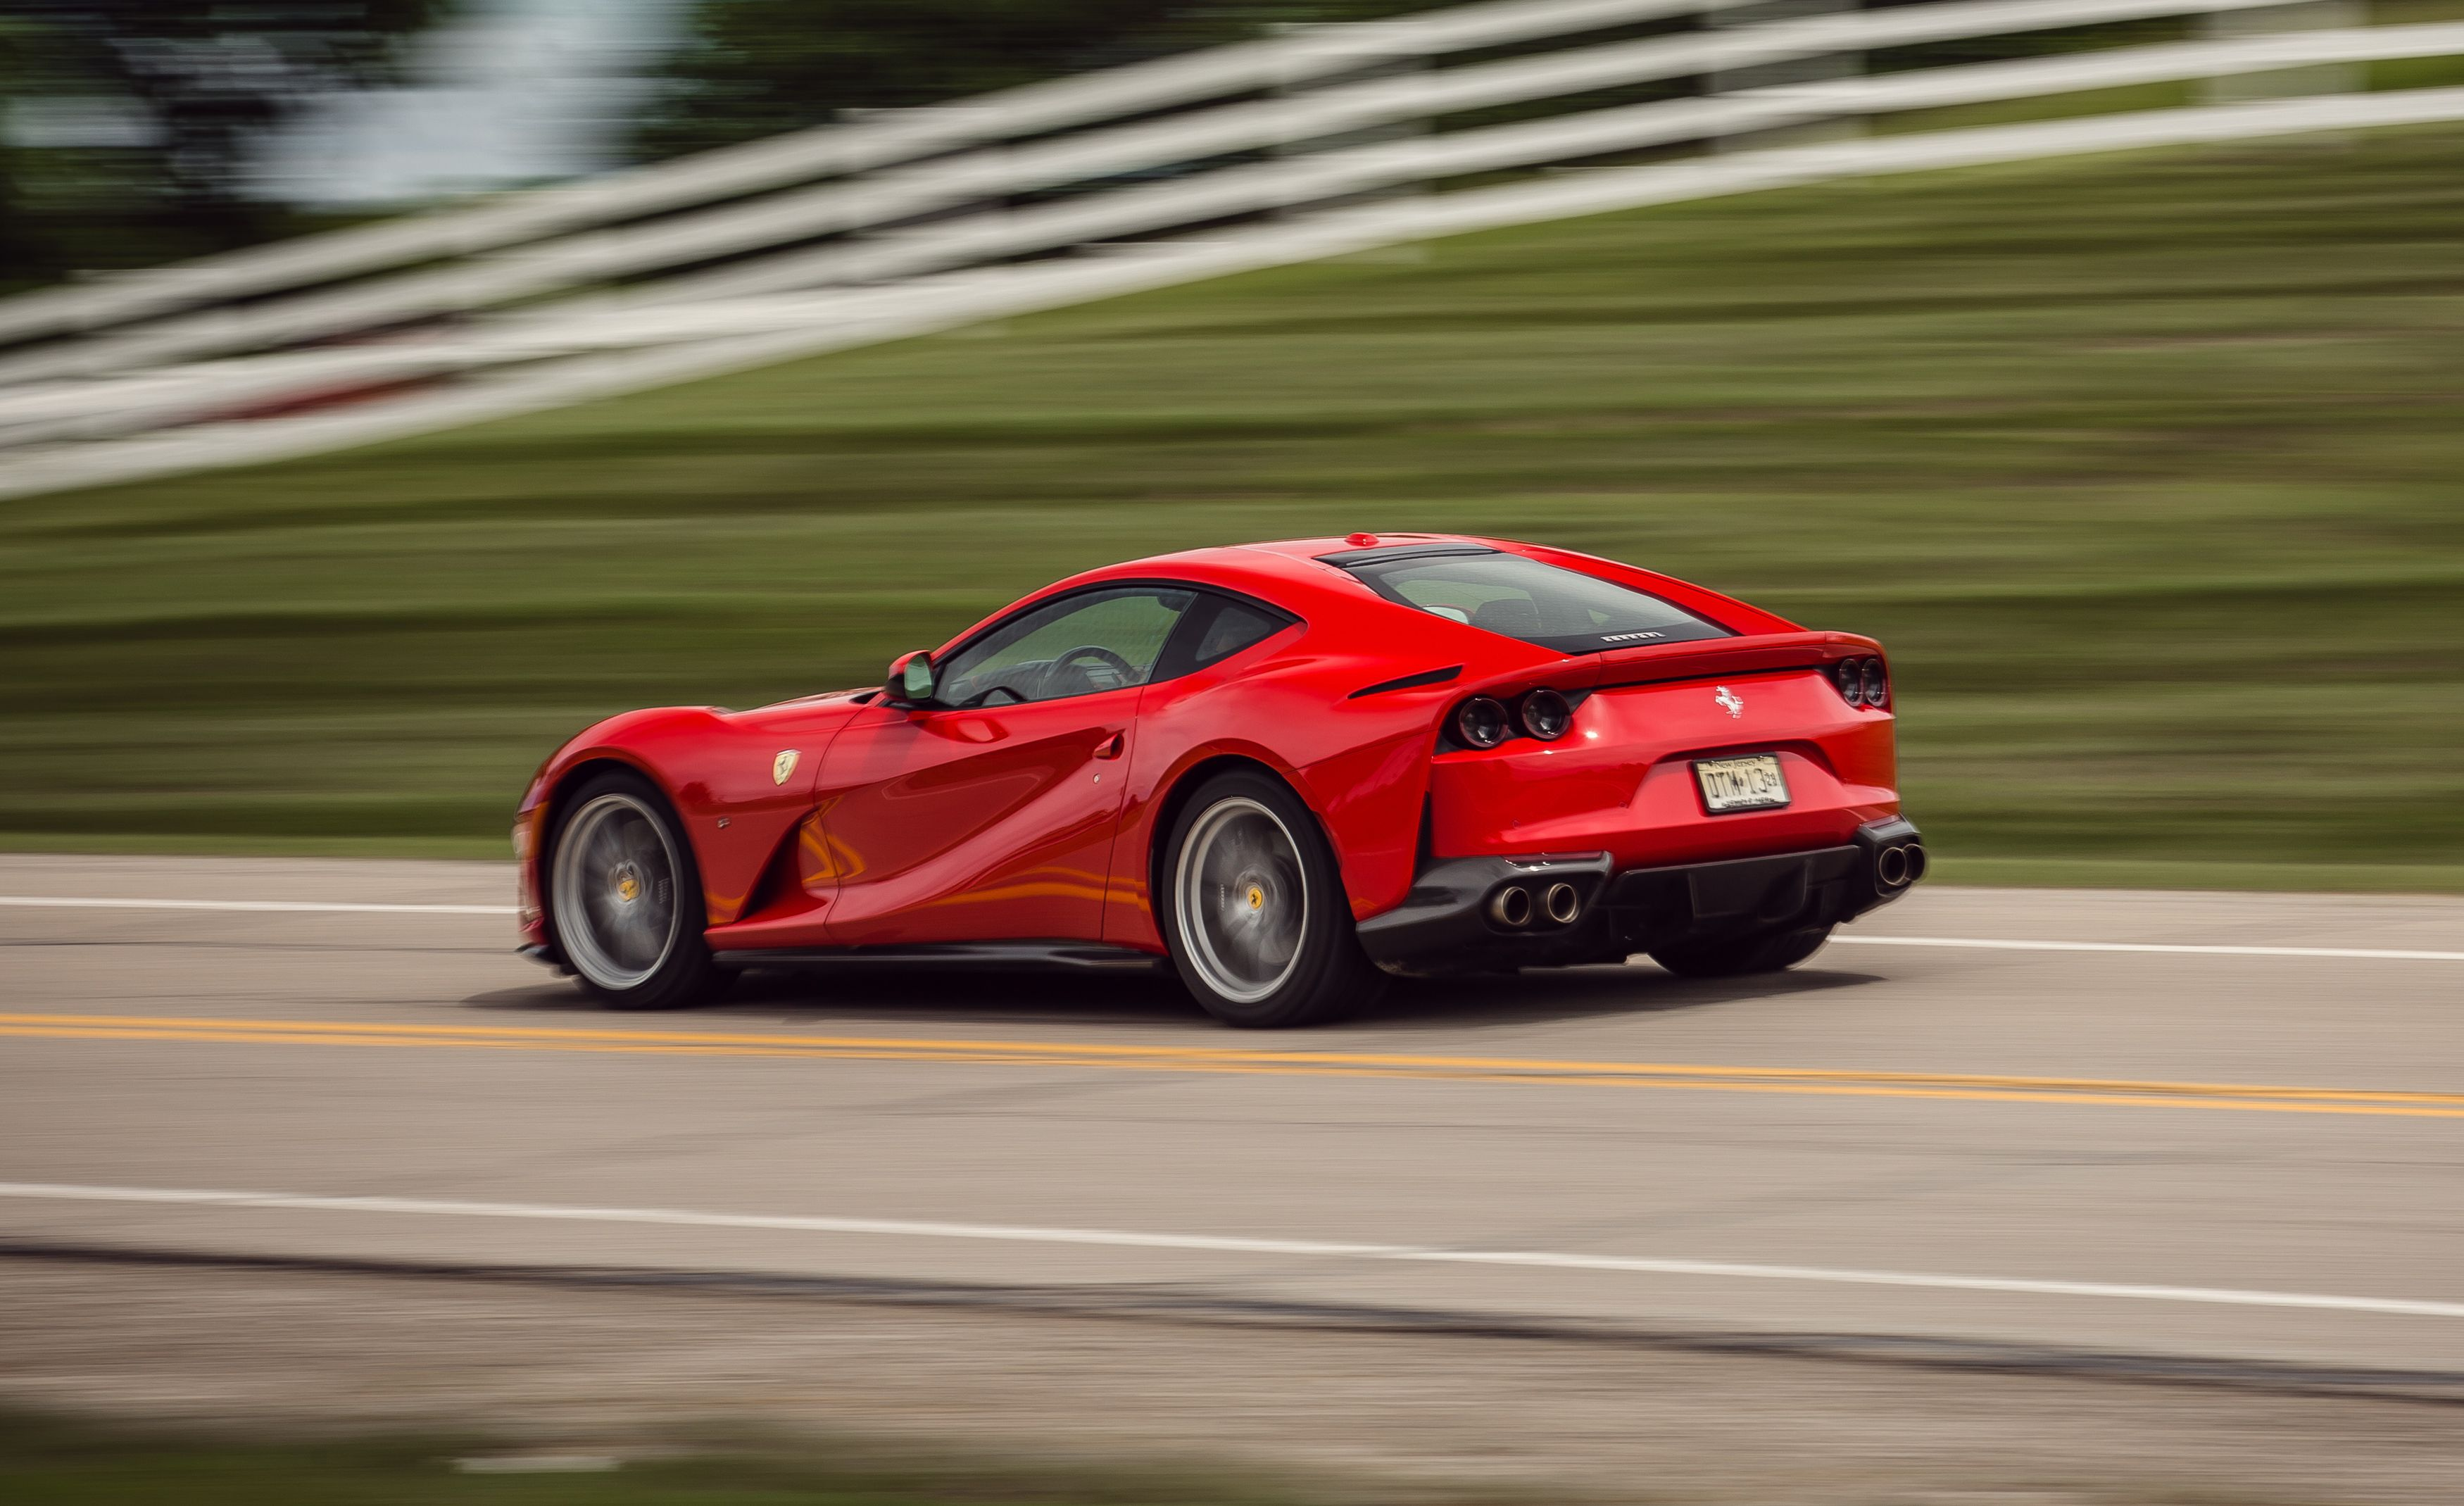 2018 Ferrari 812 Superfast Reviews | Ferrari 812 Superfast Price, Photos,  and Specs | Car and Driver